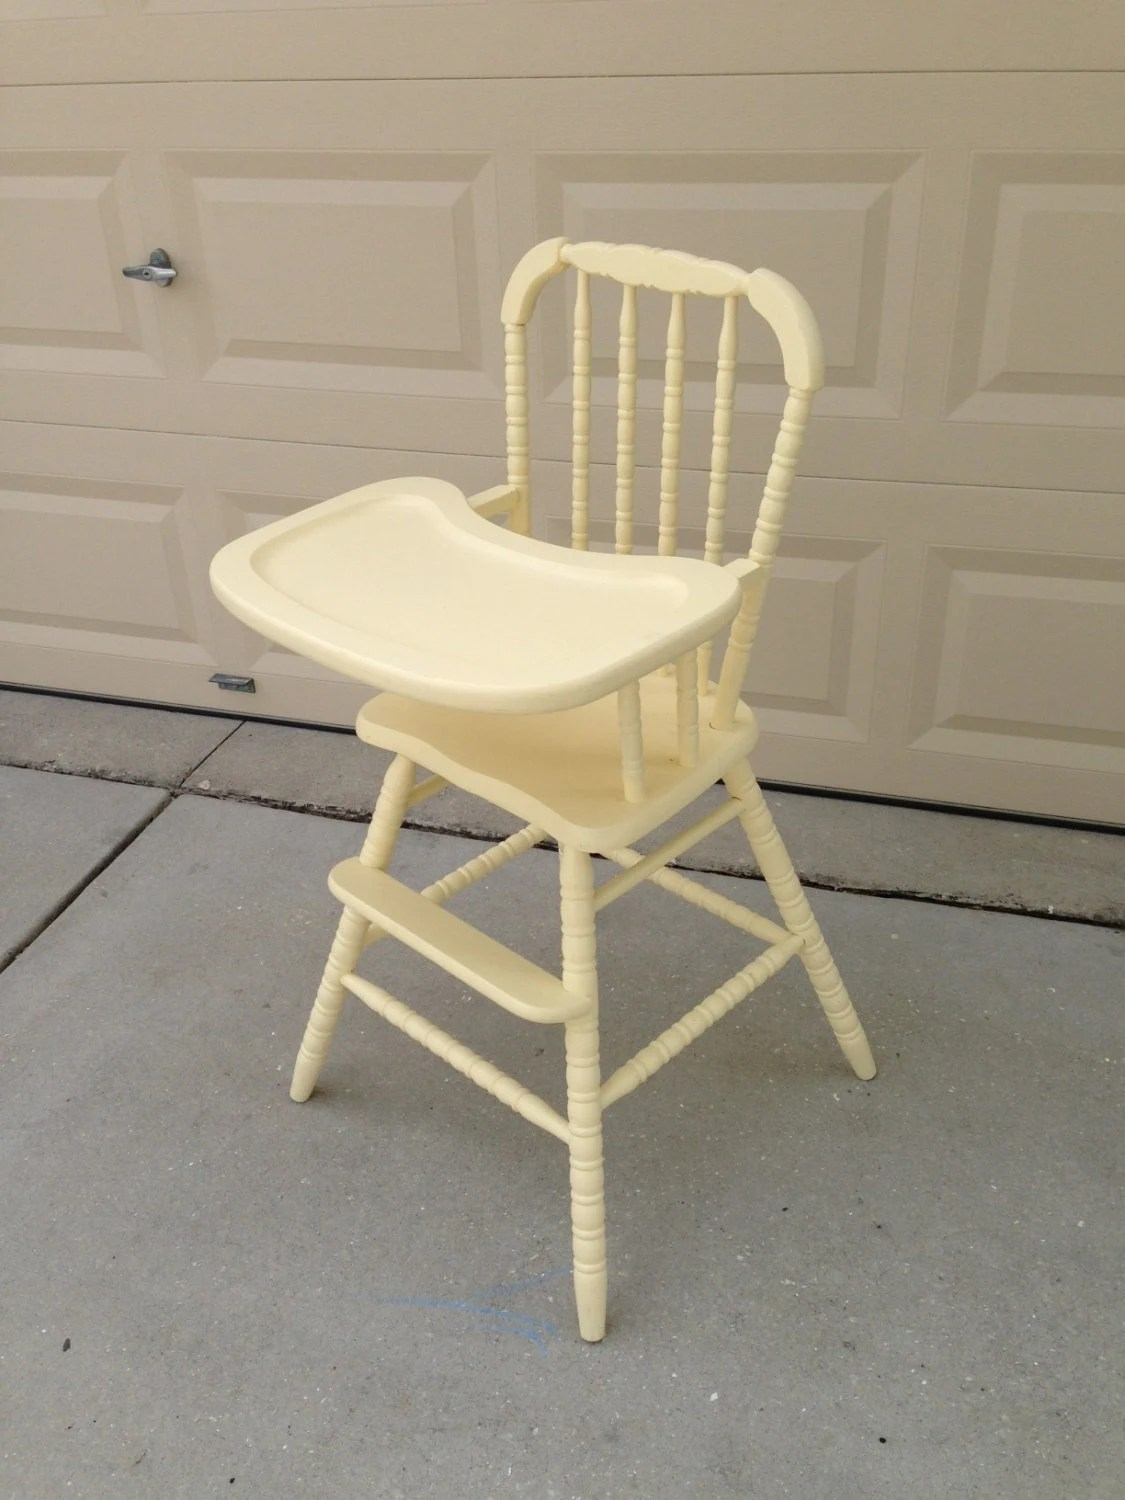 wooden baby high chairs uk chair lifts for stairs with landings items similar to vintage on etsy